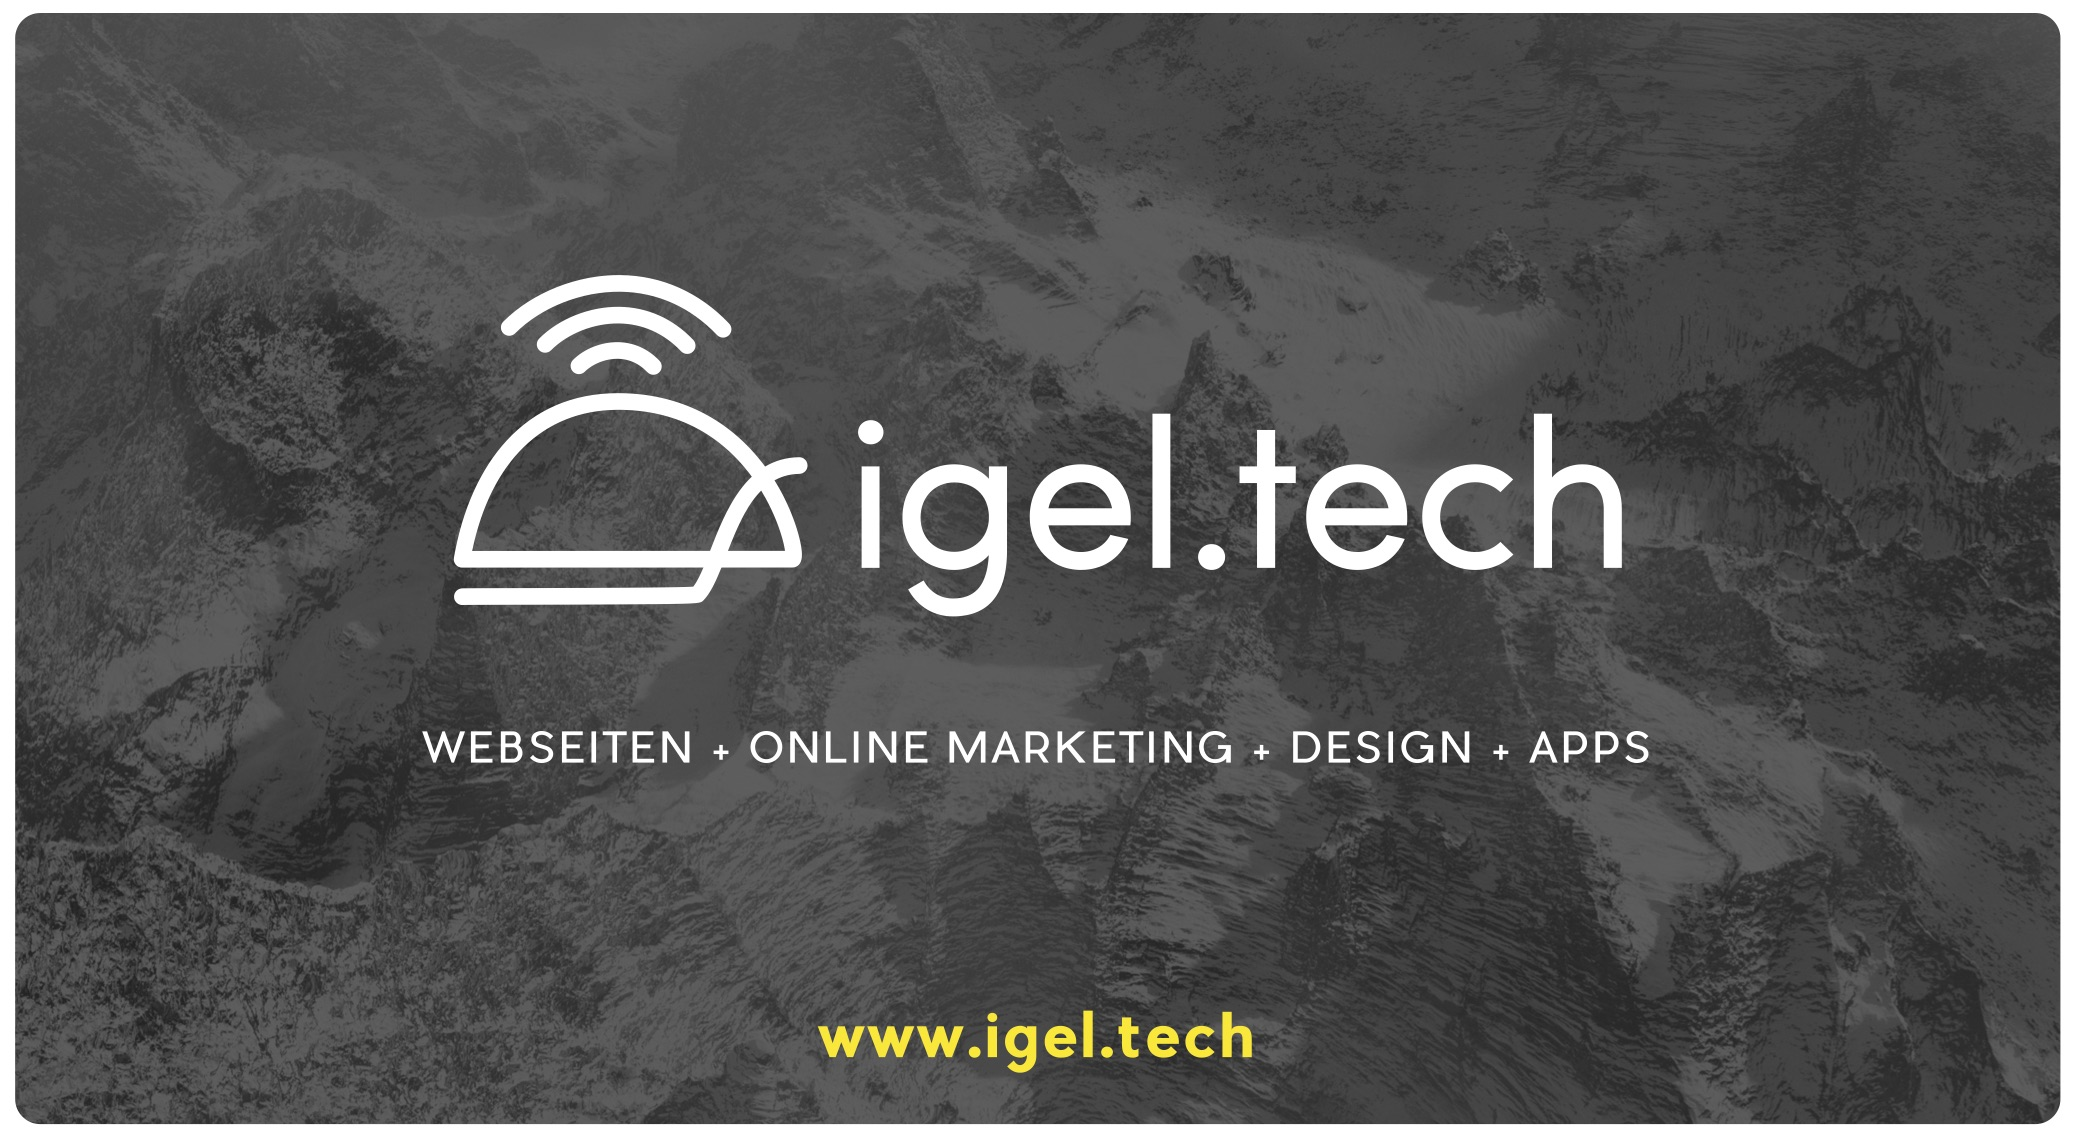 igel.tech at Startup Village 2016